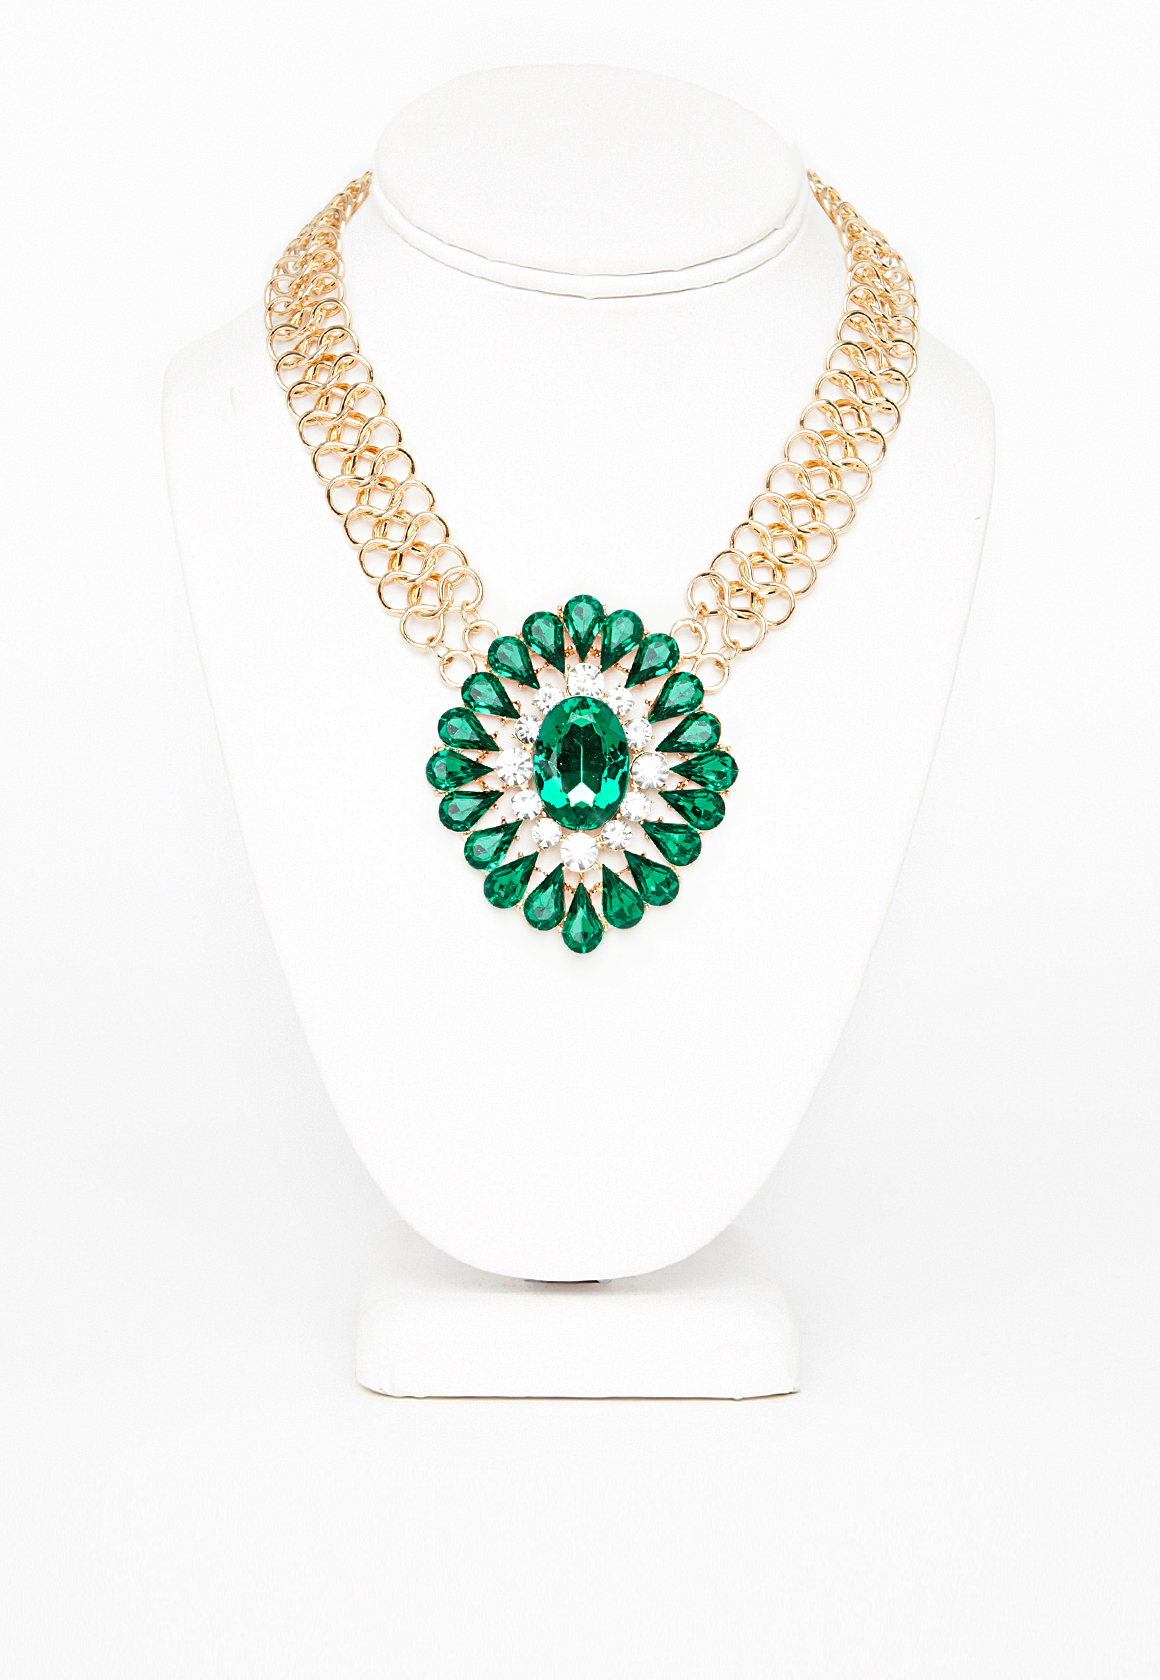 Women's Jewellery Gold Megana Oversized Gem Statement Necklace, Gold